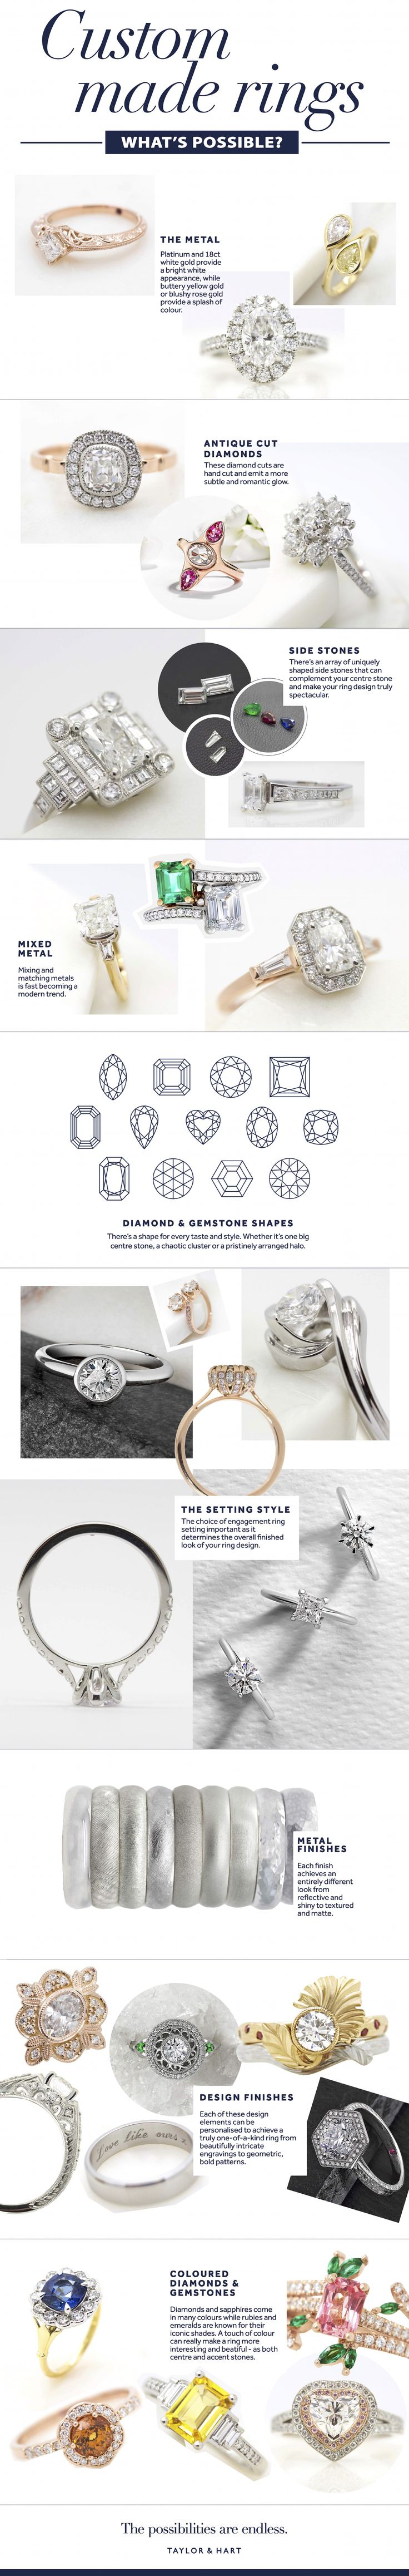 Have you ever wondered what's possible with a custom ring design? Check out our infographic on custom made rings!